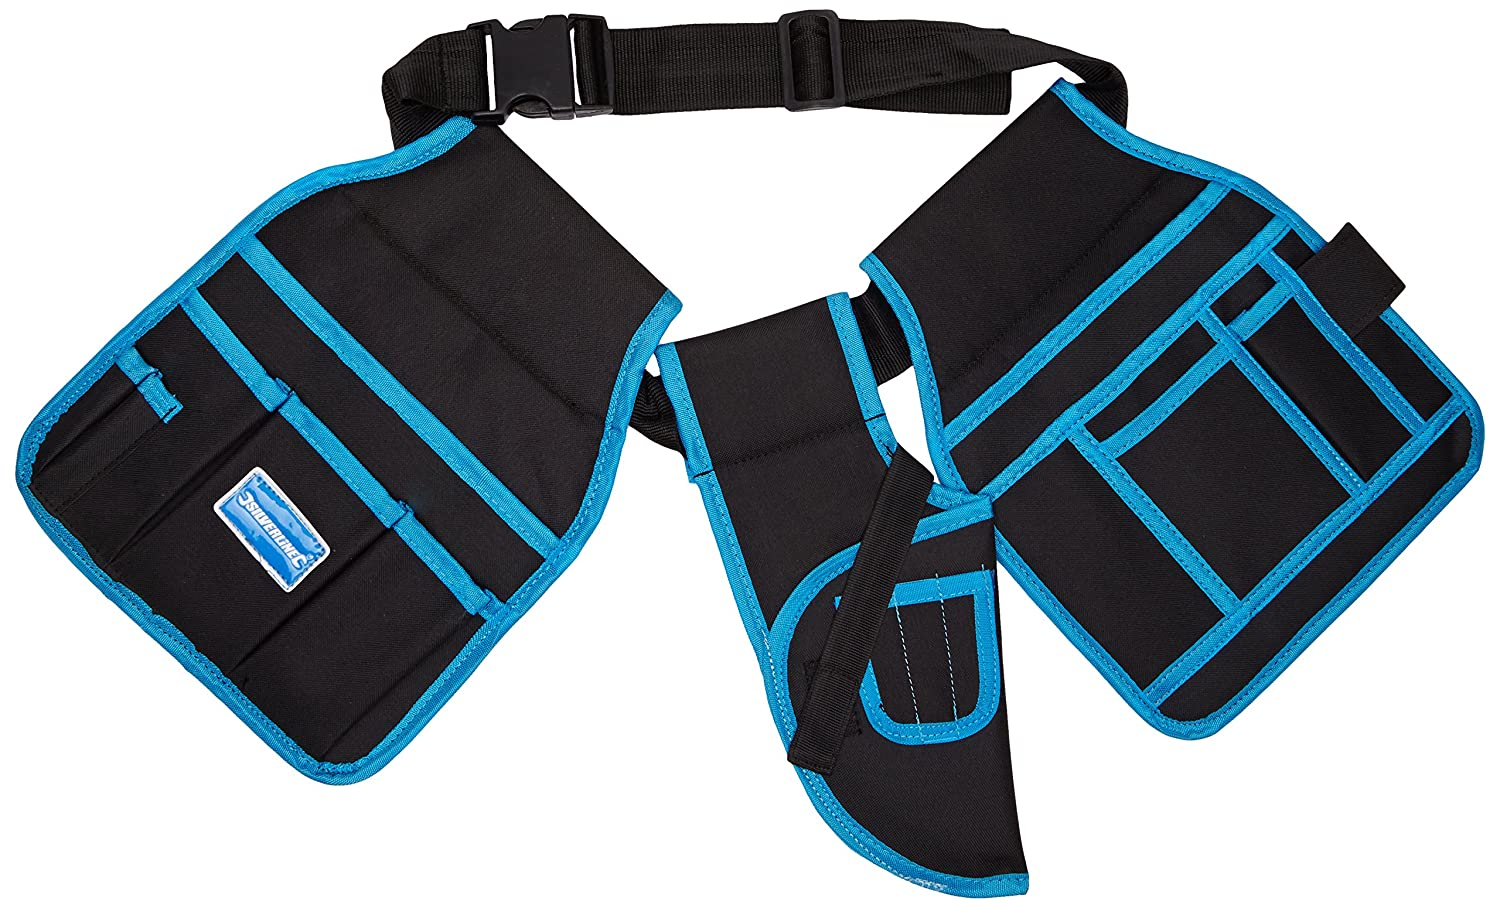 Pouch Tool Belt 15 Pockets 900-1200mm Adjustable Stain and Tear Resistant